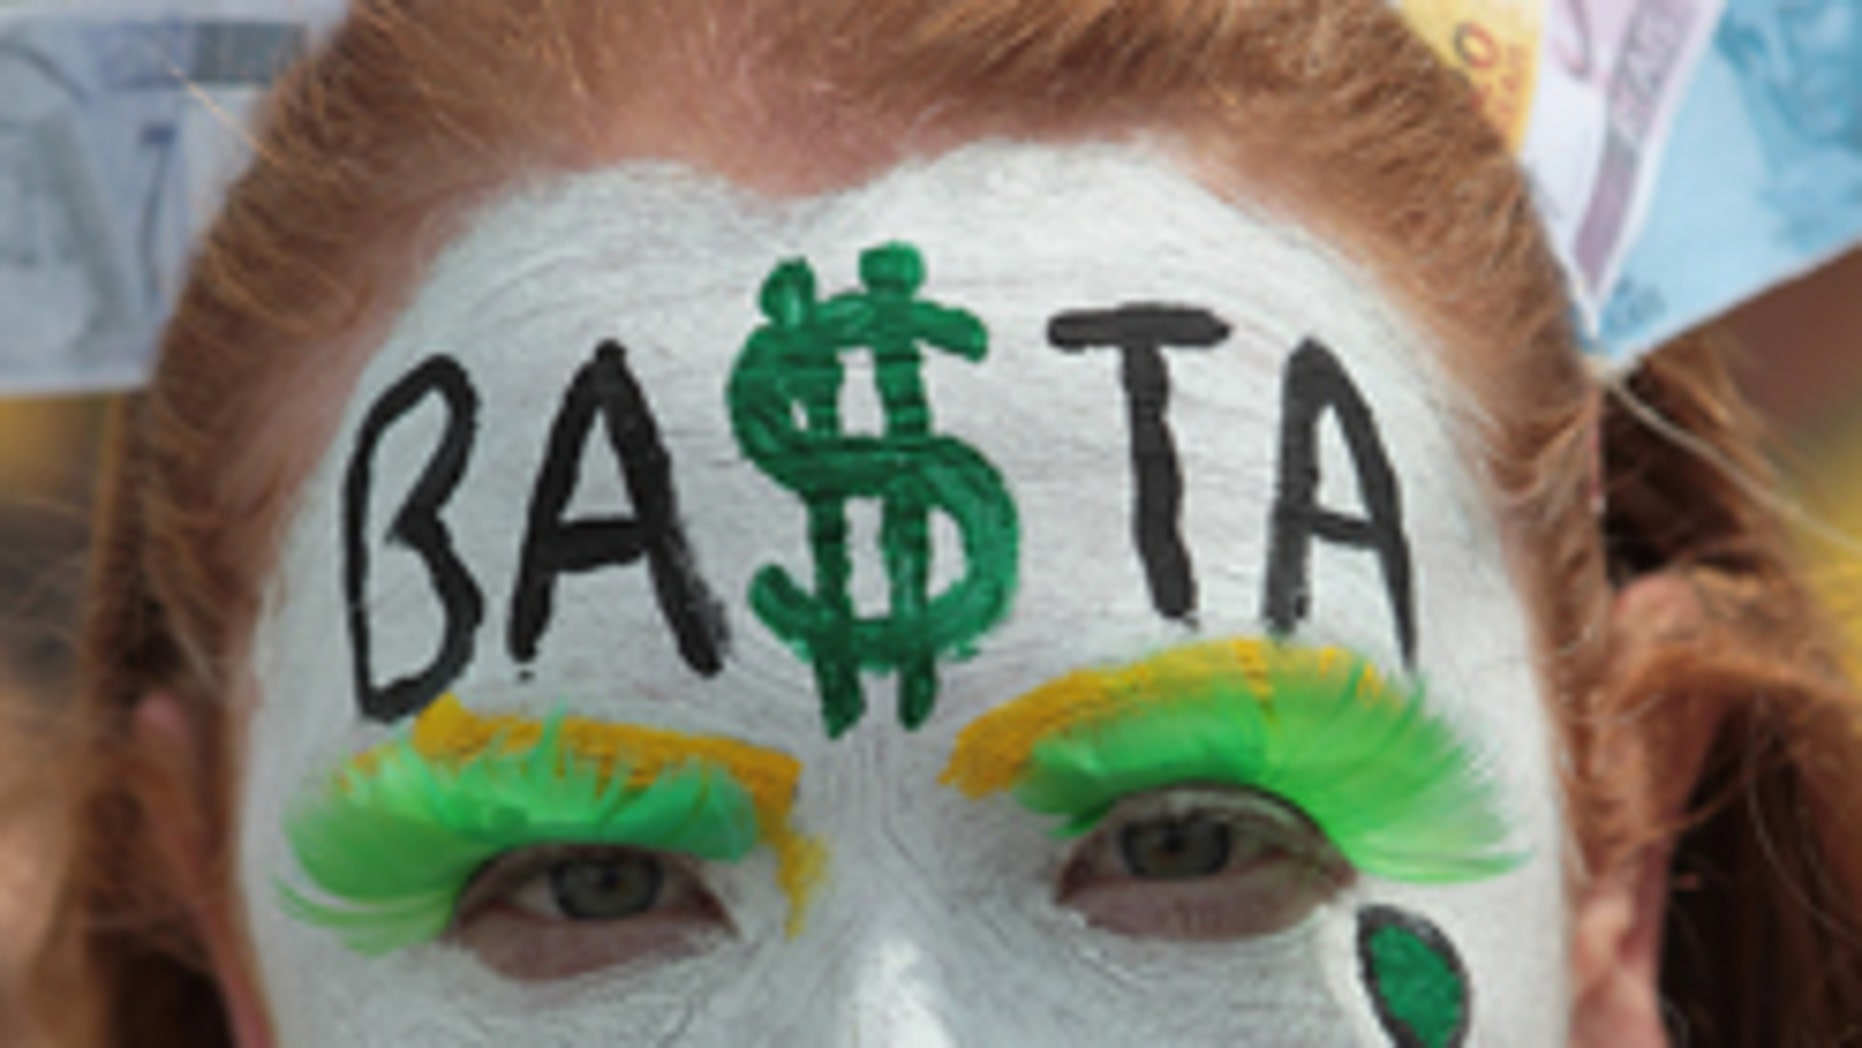 """A demonstrator shouts slogans with """"Suffice"""", written written in Portuguese on her painted face, during protest against the government of Brazil's President Dilma Rousseff, in Brasilia, Brazil, Sunday, March 15, 2015. Protests have been called for across Brazil to demonstrate against President Dilma Rousseff, whose popularity has never been lower as she faces a sputtering economy and a massive corruption scandal. (AP Photo/Eraldo Peres)"""